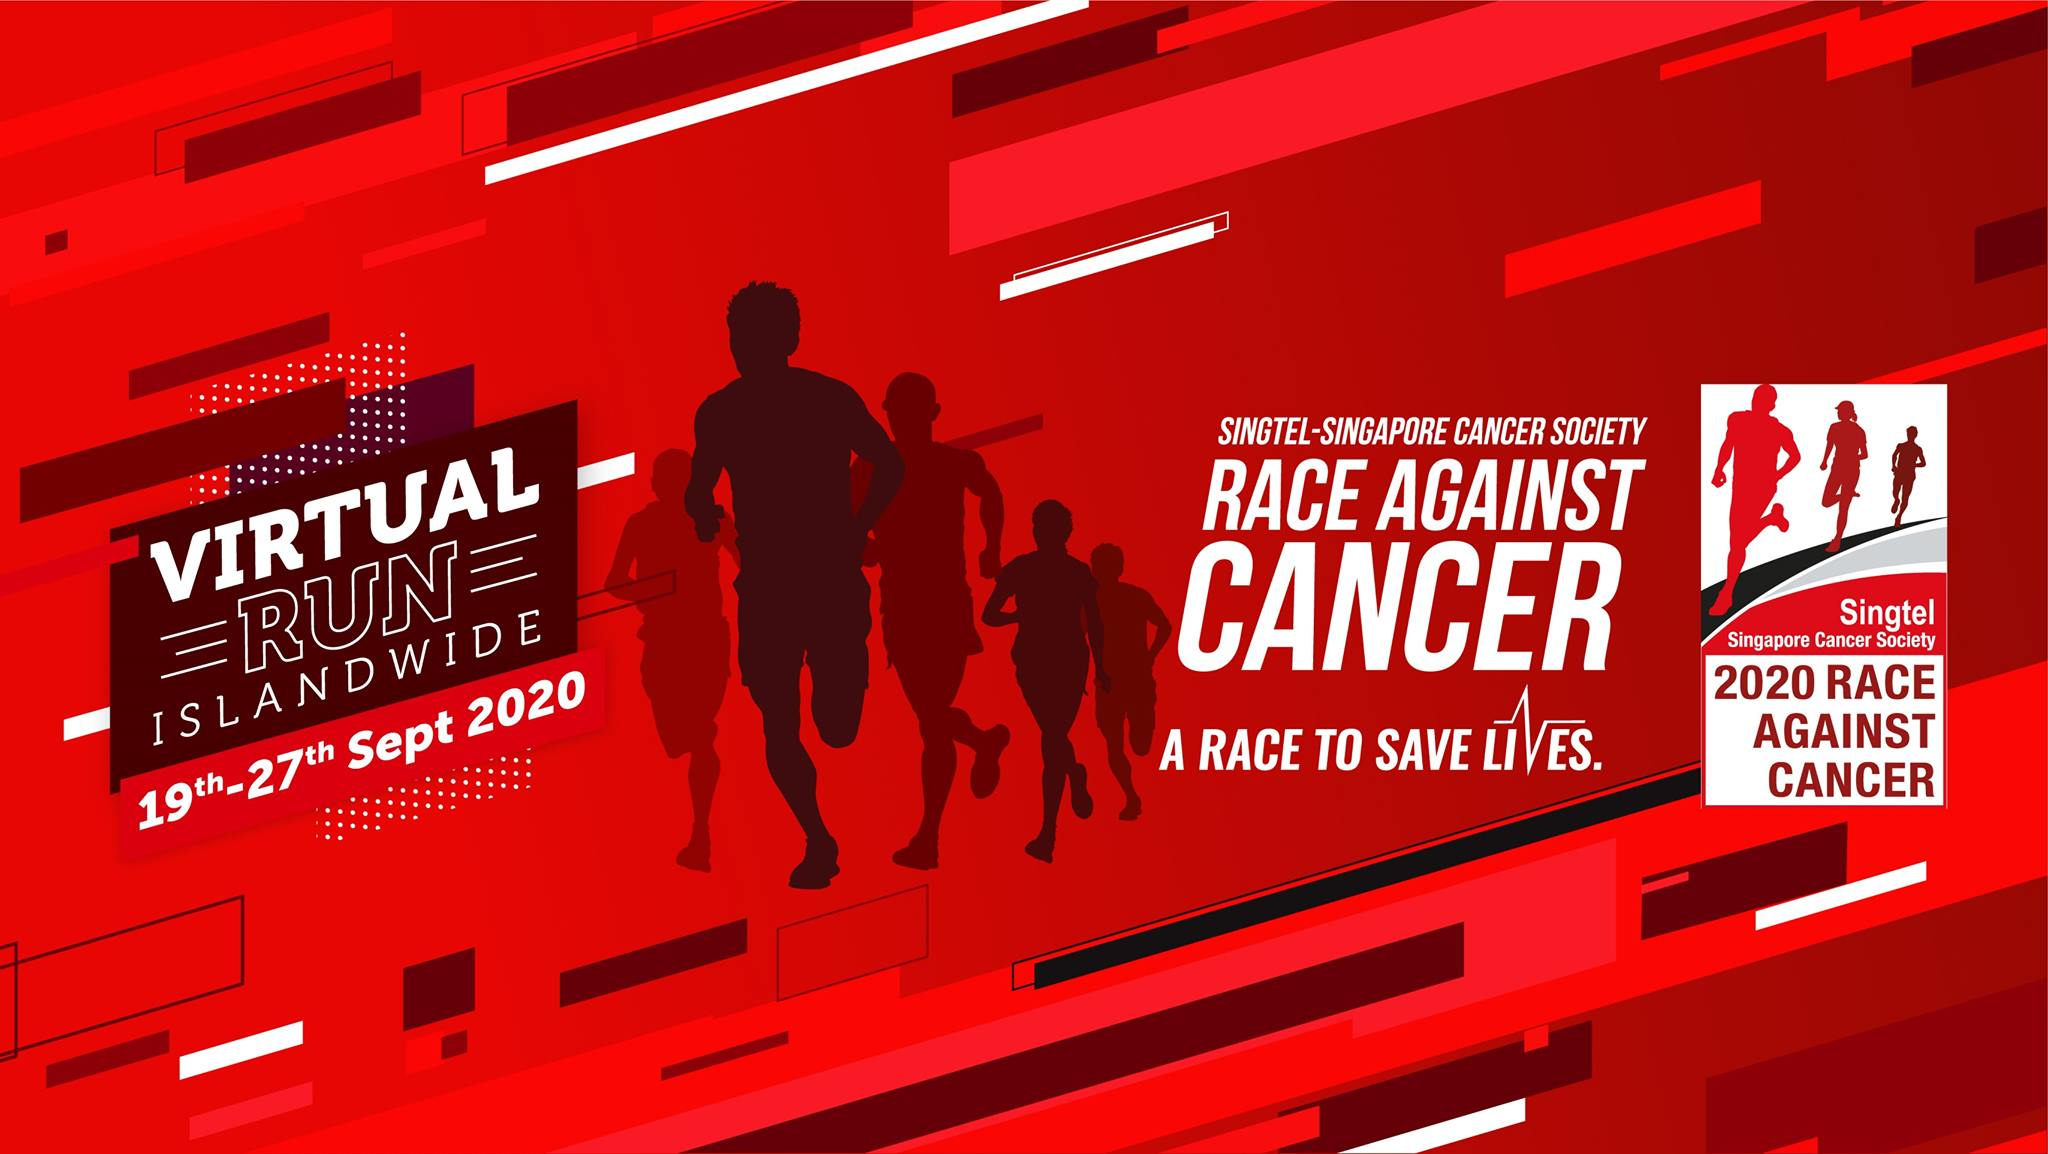 Logo of Singtel – Singapore Cancer Society Race Against Cancer 2020